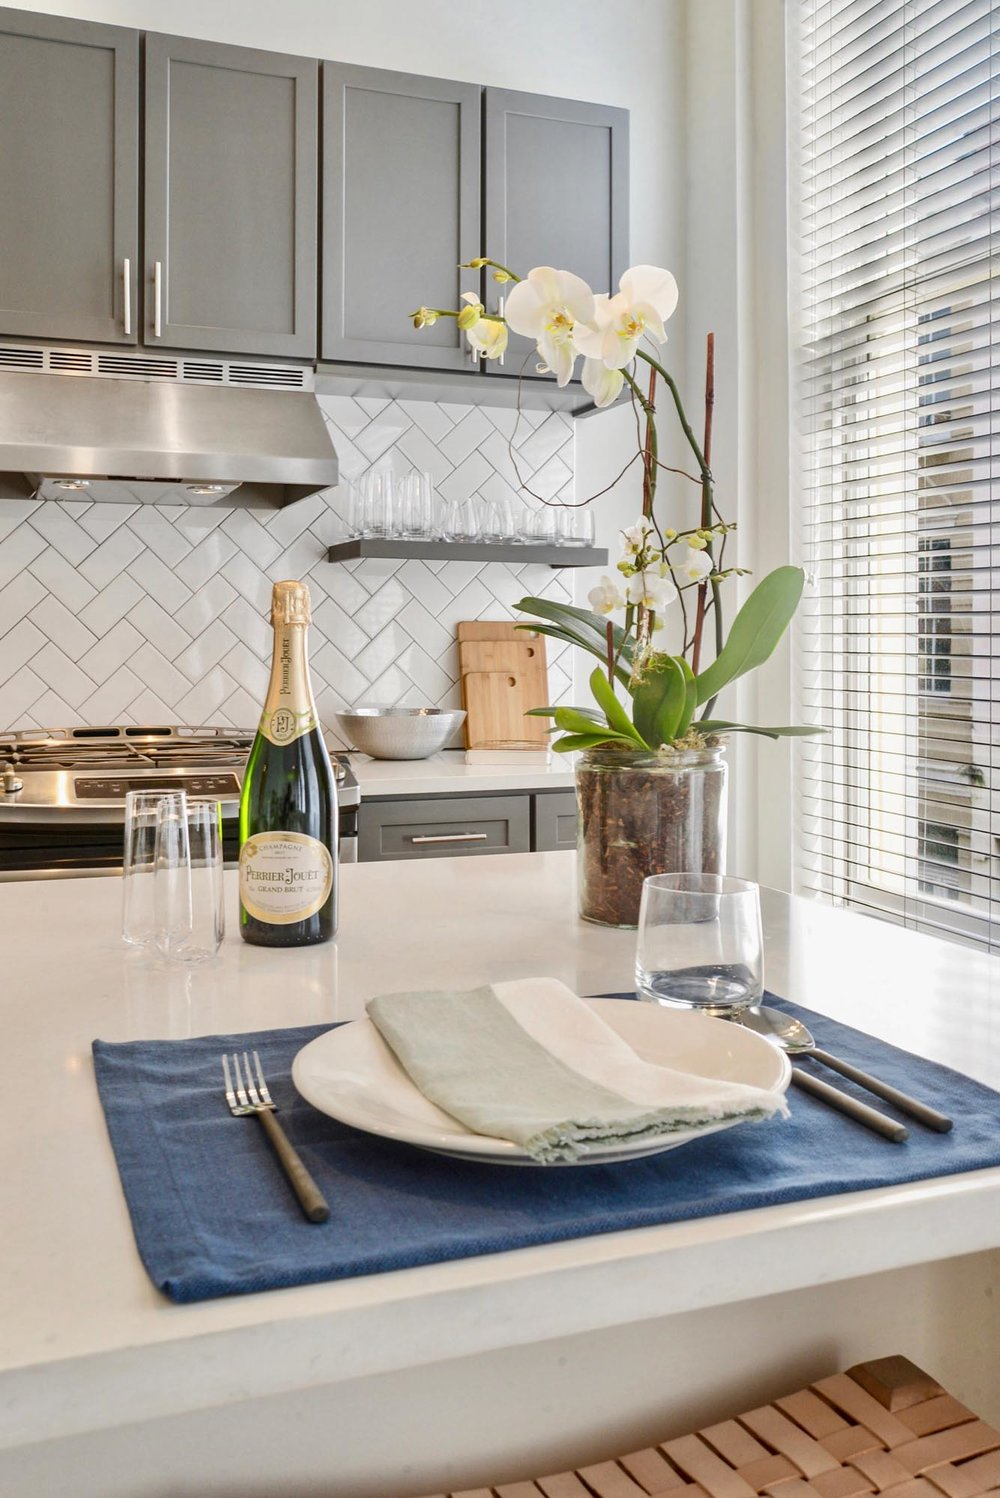 White kitchen island with place setting and flowers